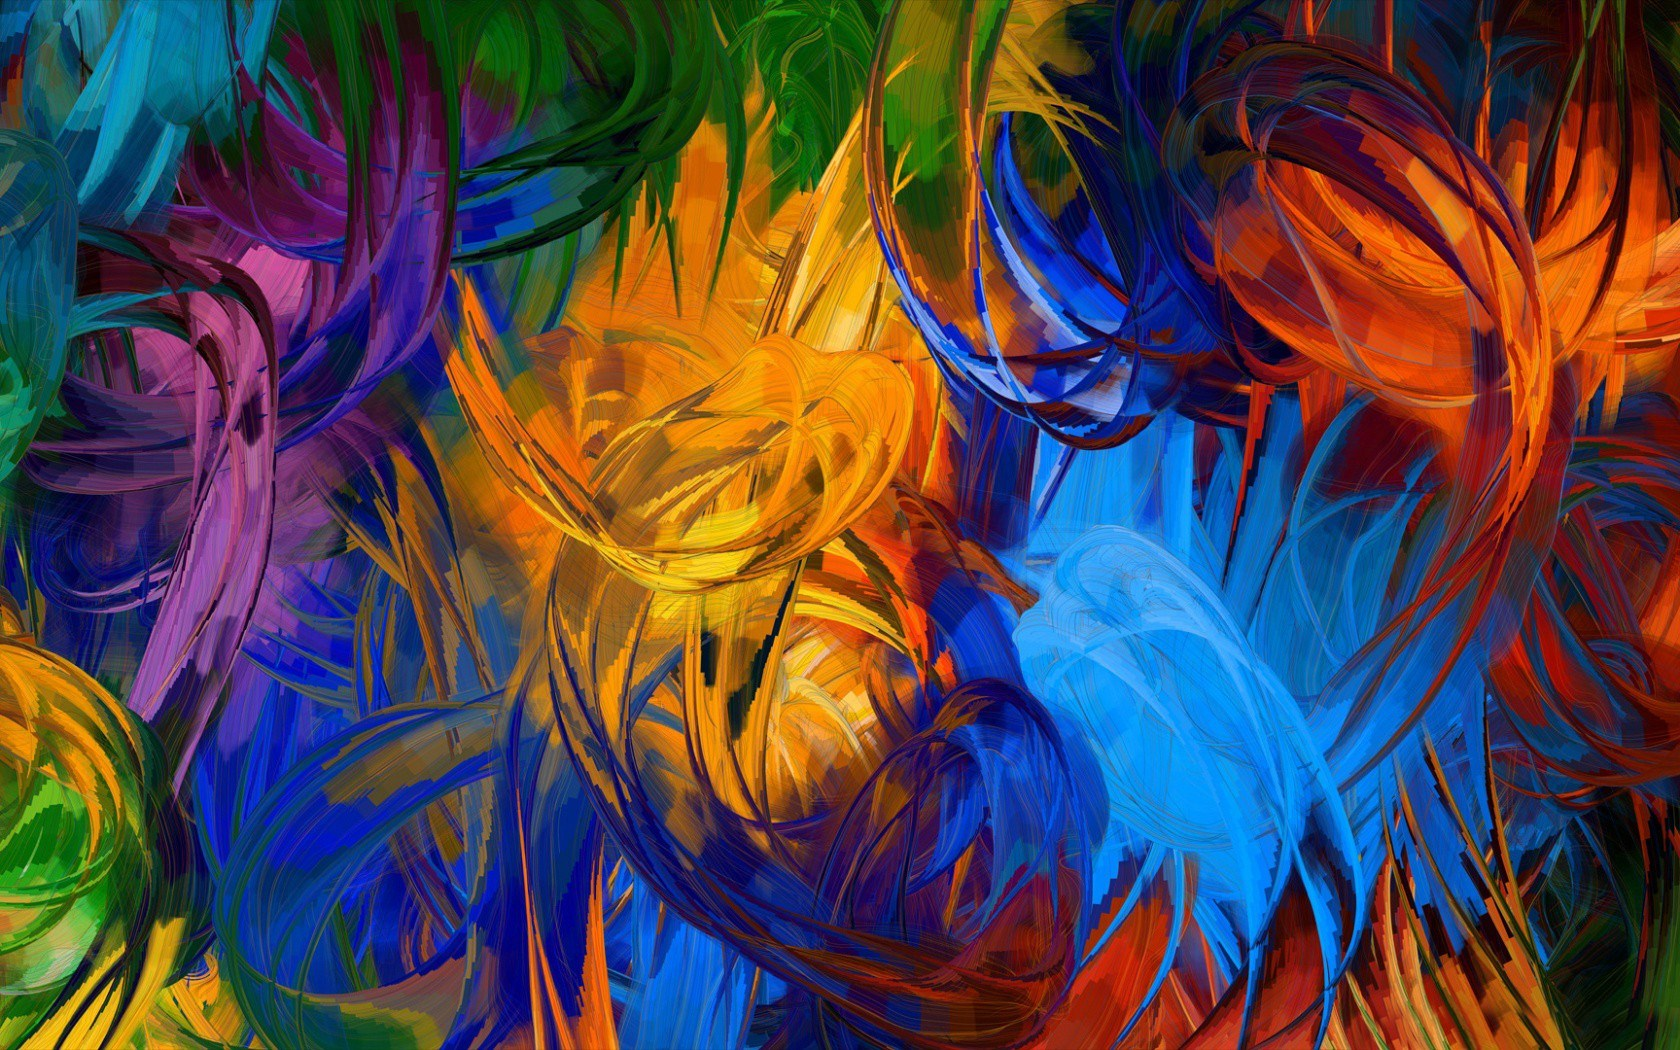 abstract painting wallpapers wallpaper - photo #48